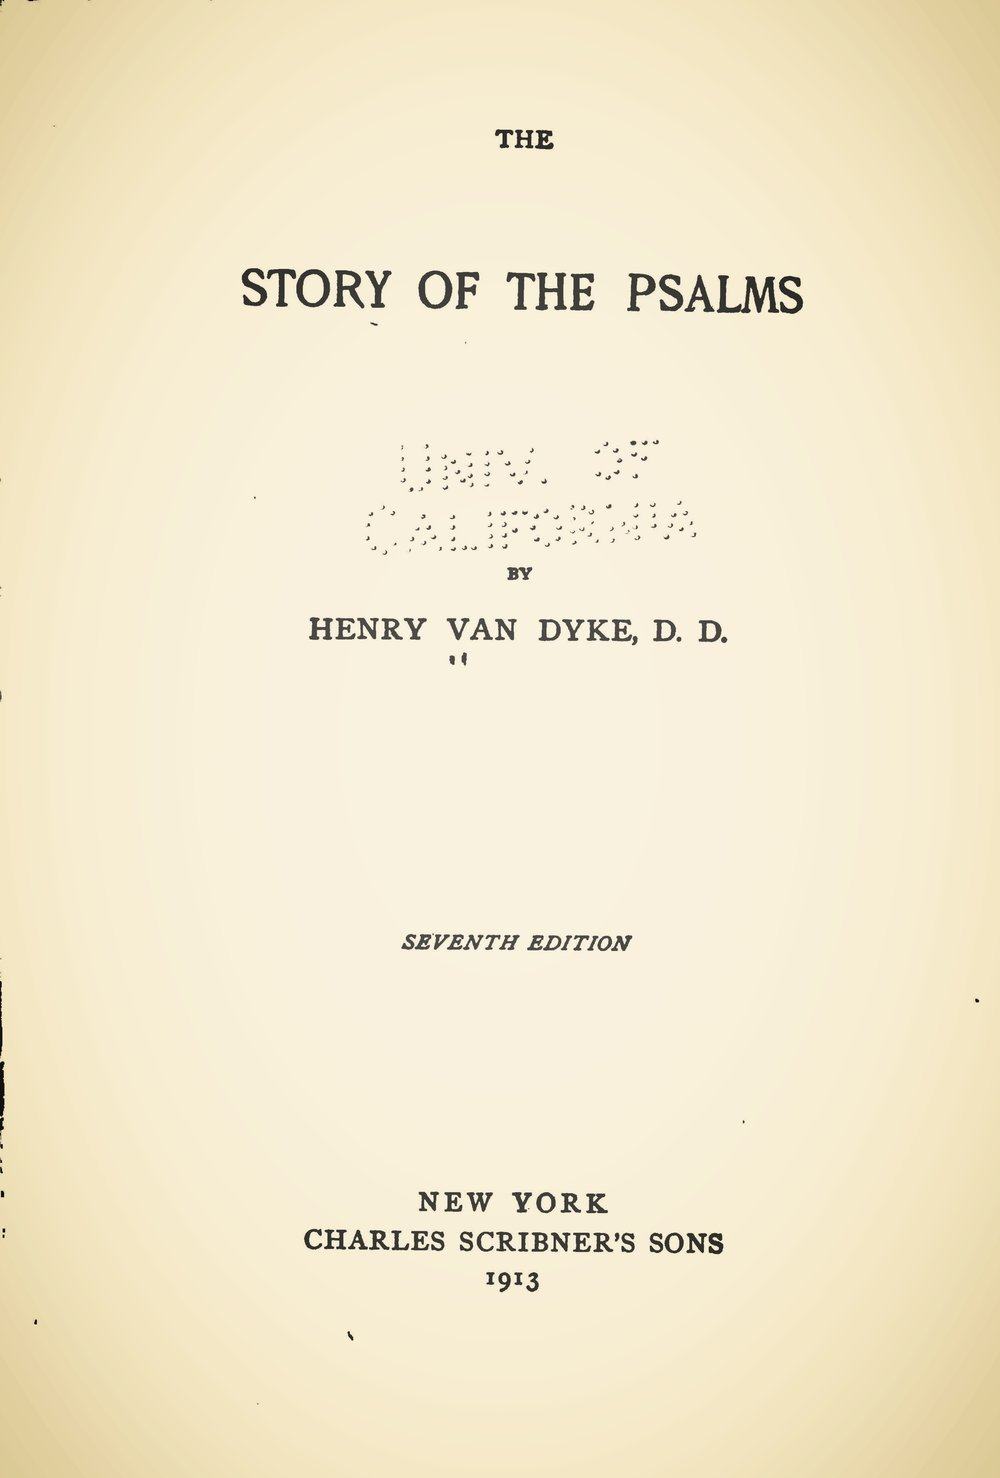 Van Dyke, Jr., Henry, The Story of the Psalms Title Page.jpg